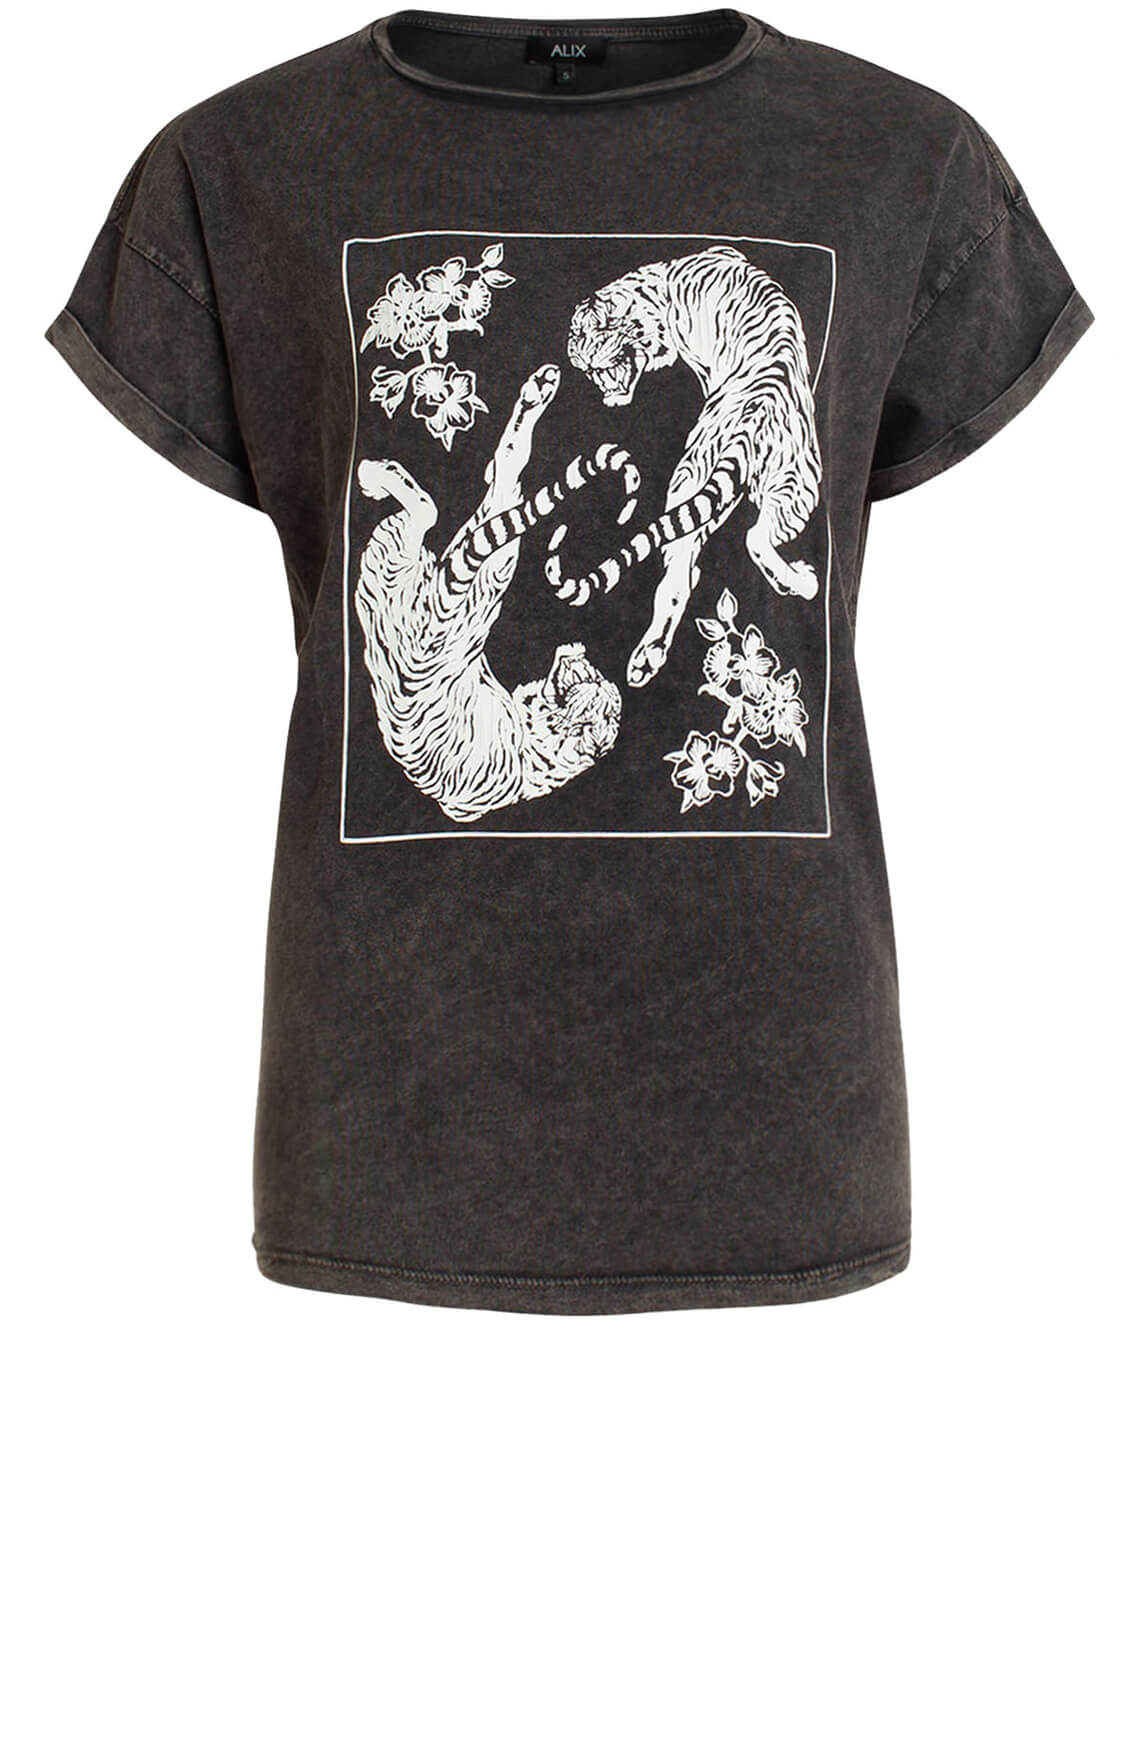 Alix The Label Dames Shirt met tijger artwork Grijs